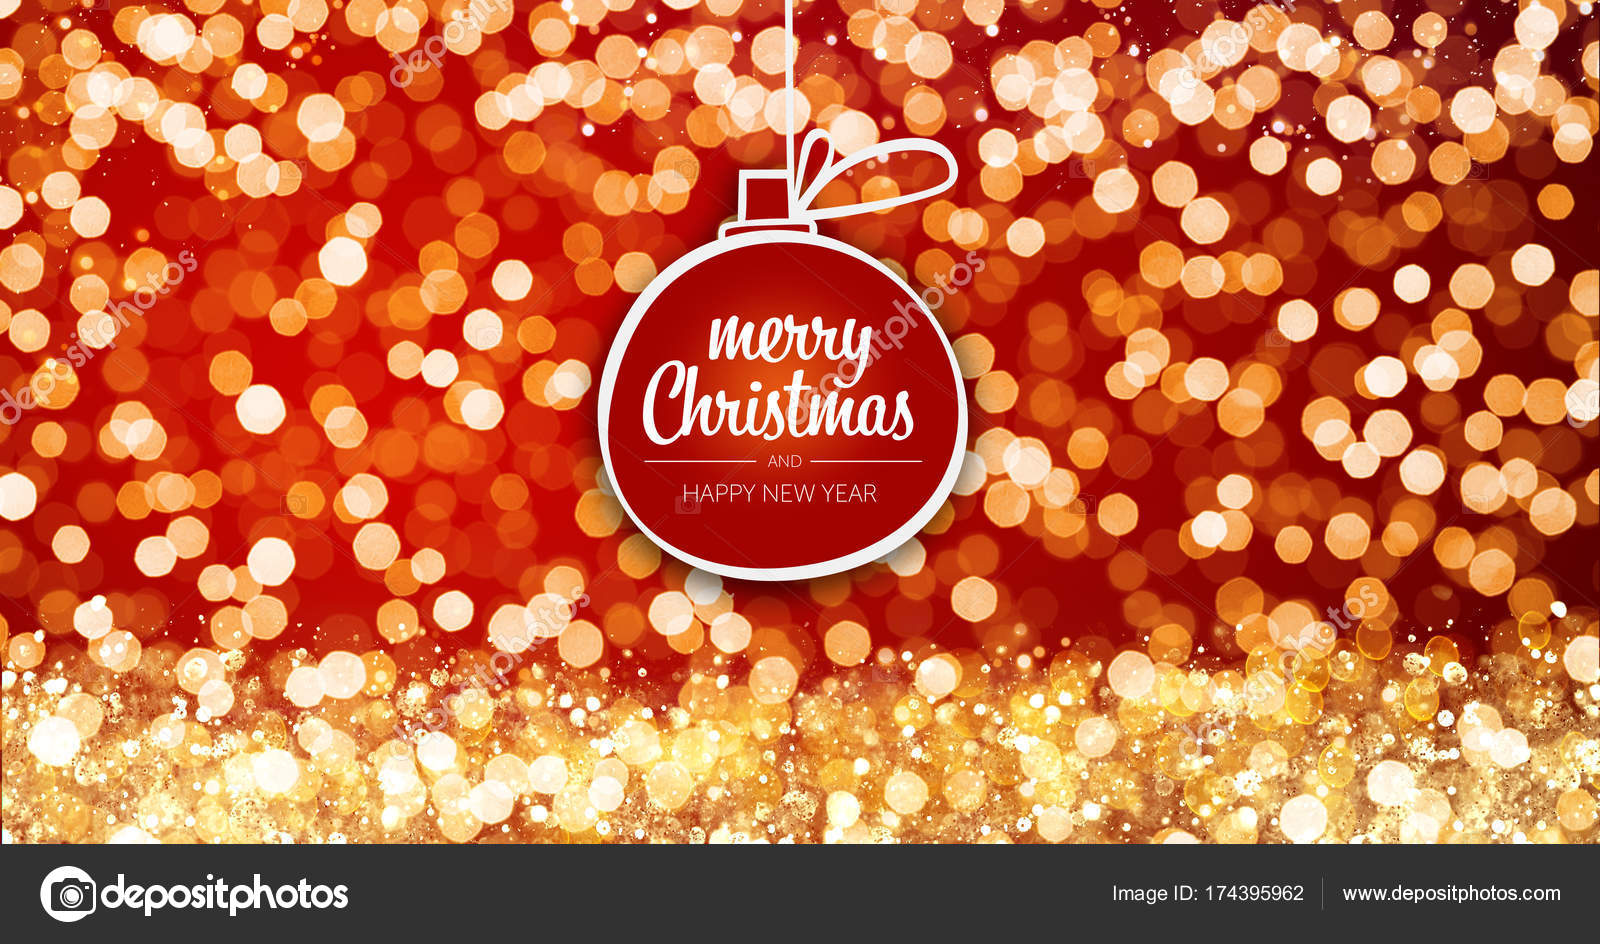 Sparkling Gold And Silver Xmas Lights With Merry Christmas And Happy